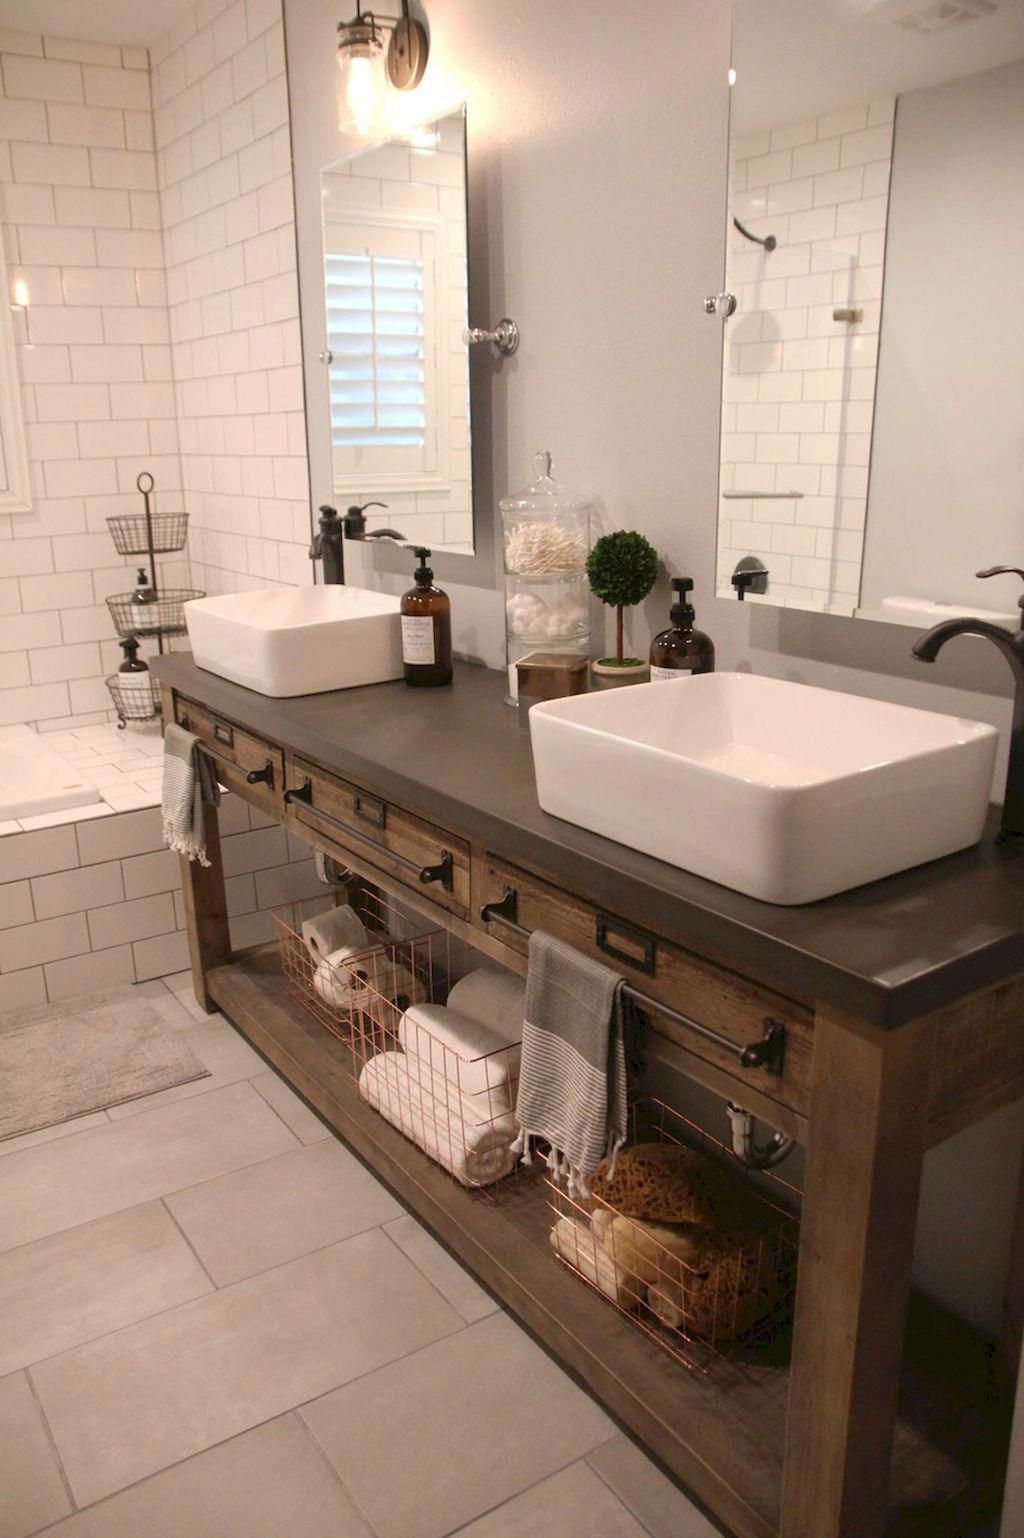 Contemporary Master Bathroom Tap The Link Now To See Where The World S Leading Interior Contemporary Master Bathroom Bathroom Remodel Master Bathrooms Remodel